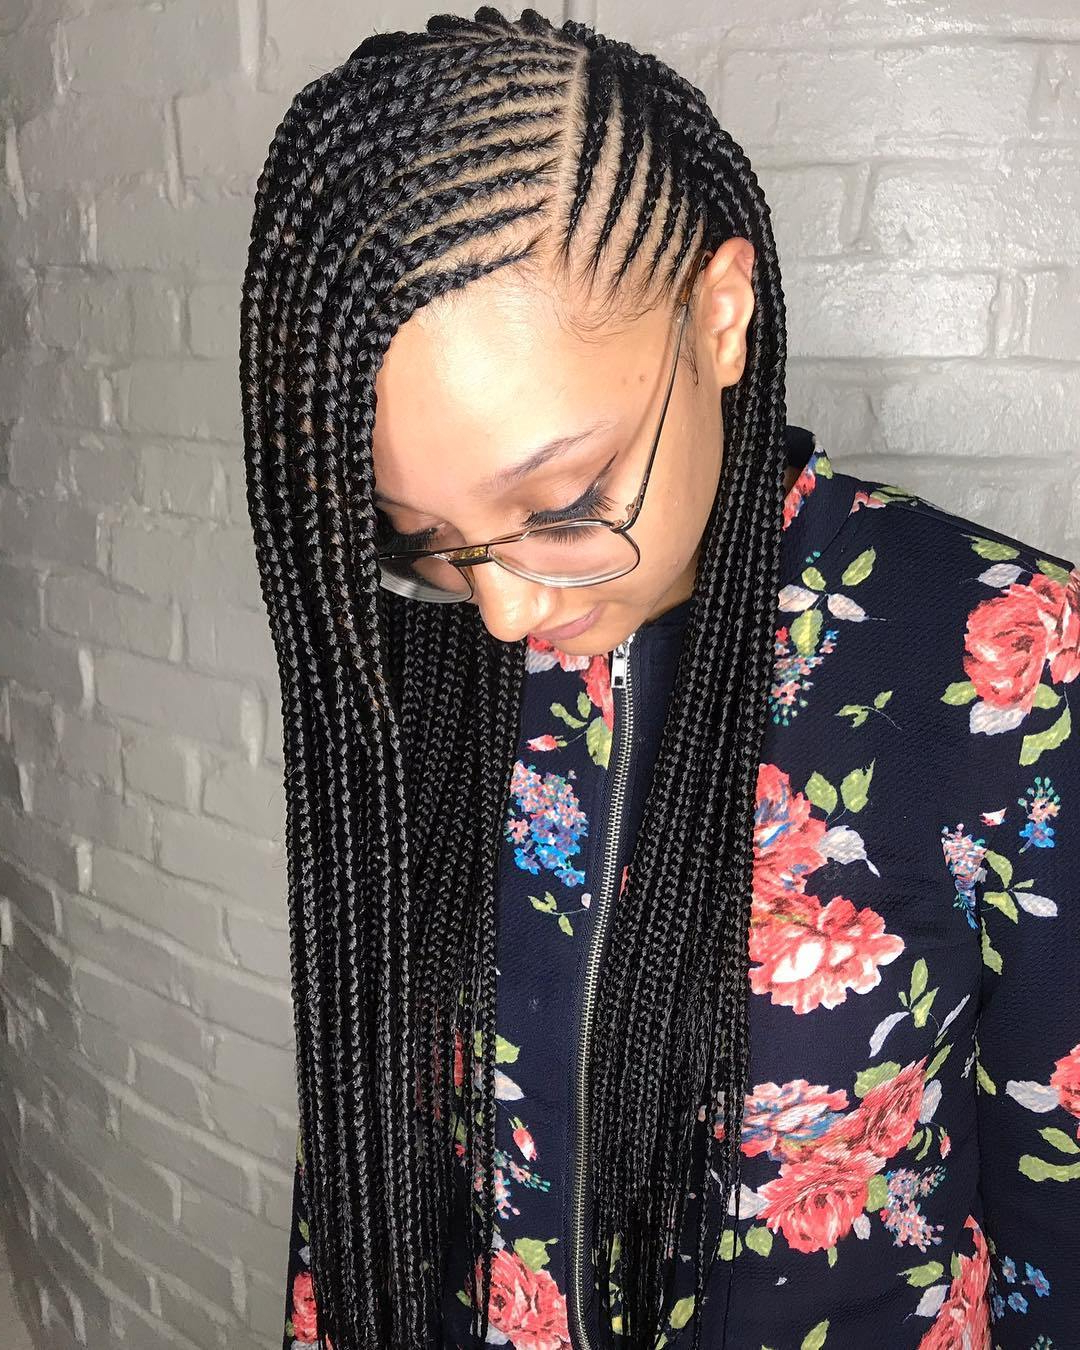 Widely Used Full Scalp Patterned Side Braided Hairstyles Intended For 25 Charming Lemonade Braids To Rock Your Appearance (View 20 of 20)